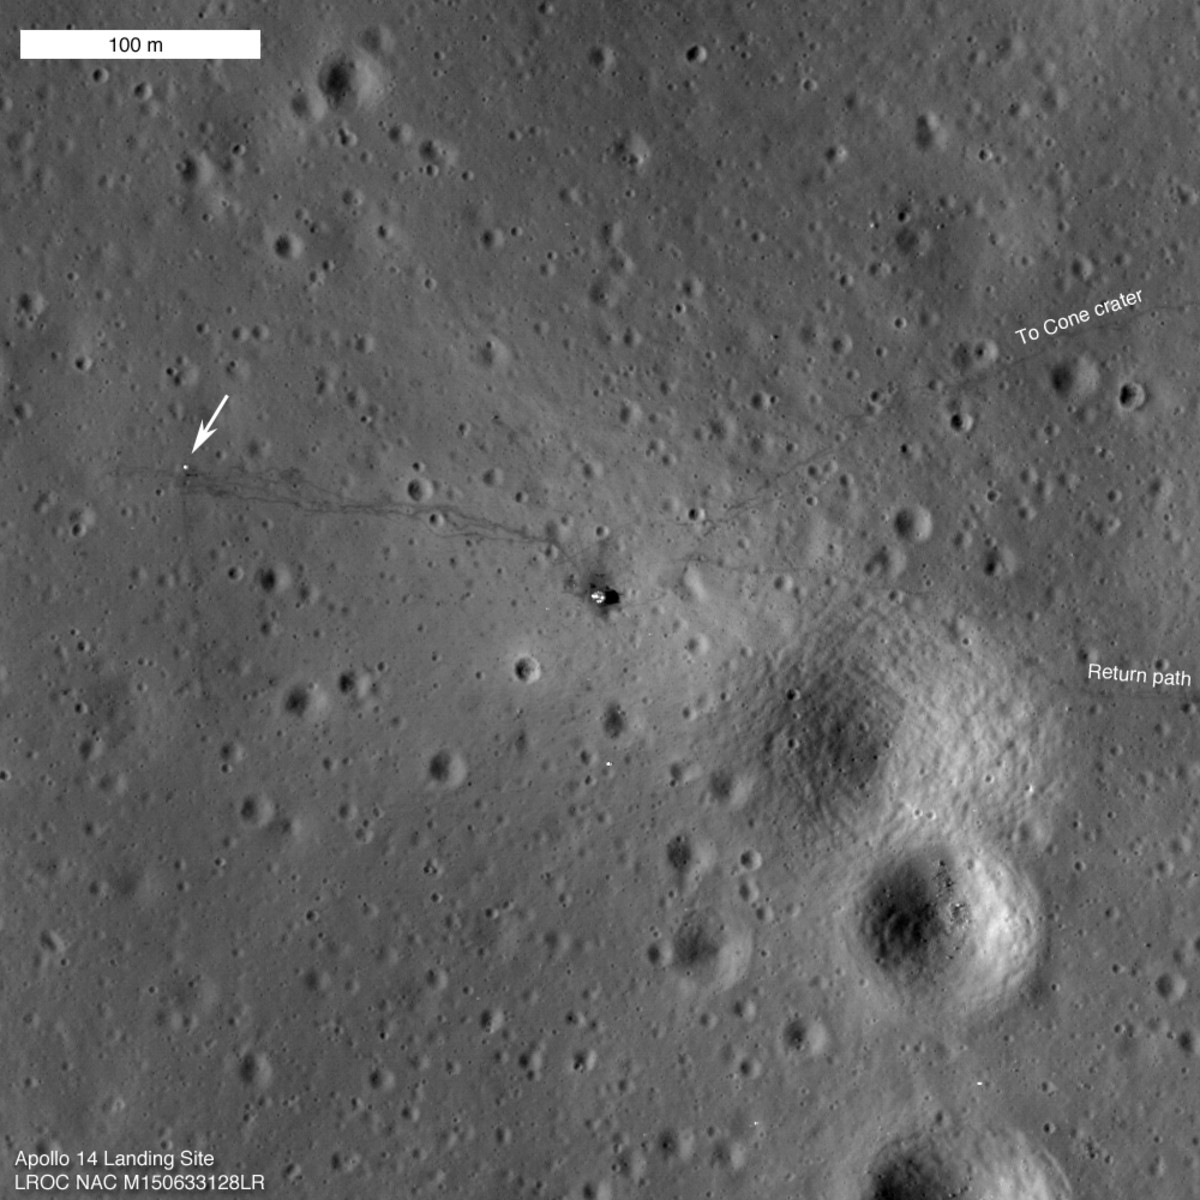 February 2011 views of Antares moon lander (right), instruments left behind (arrow, left), and astronaut tracks. Click link for a sad story: lacking LRO images, the astronauts had to turn back just before reaching a crater they were looking for.